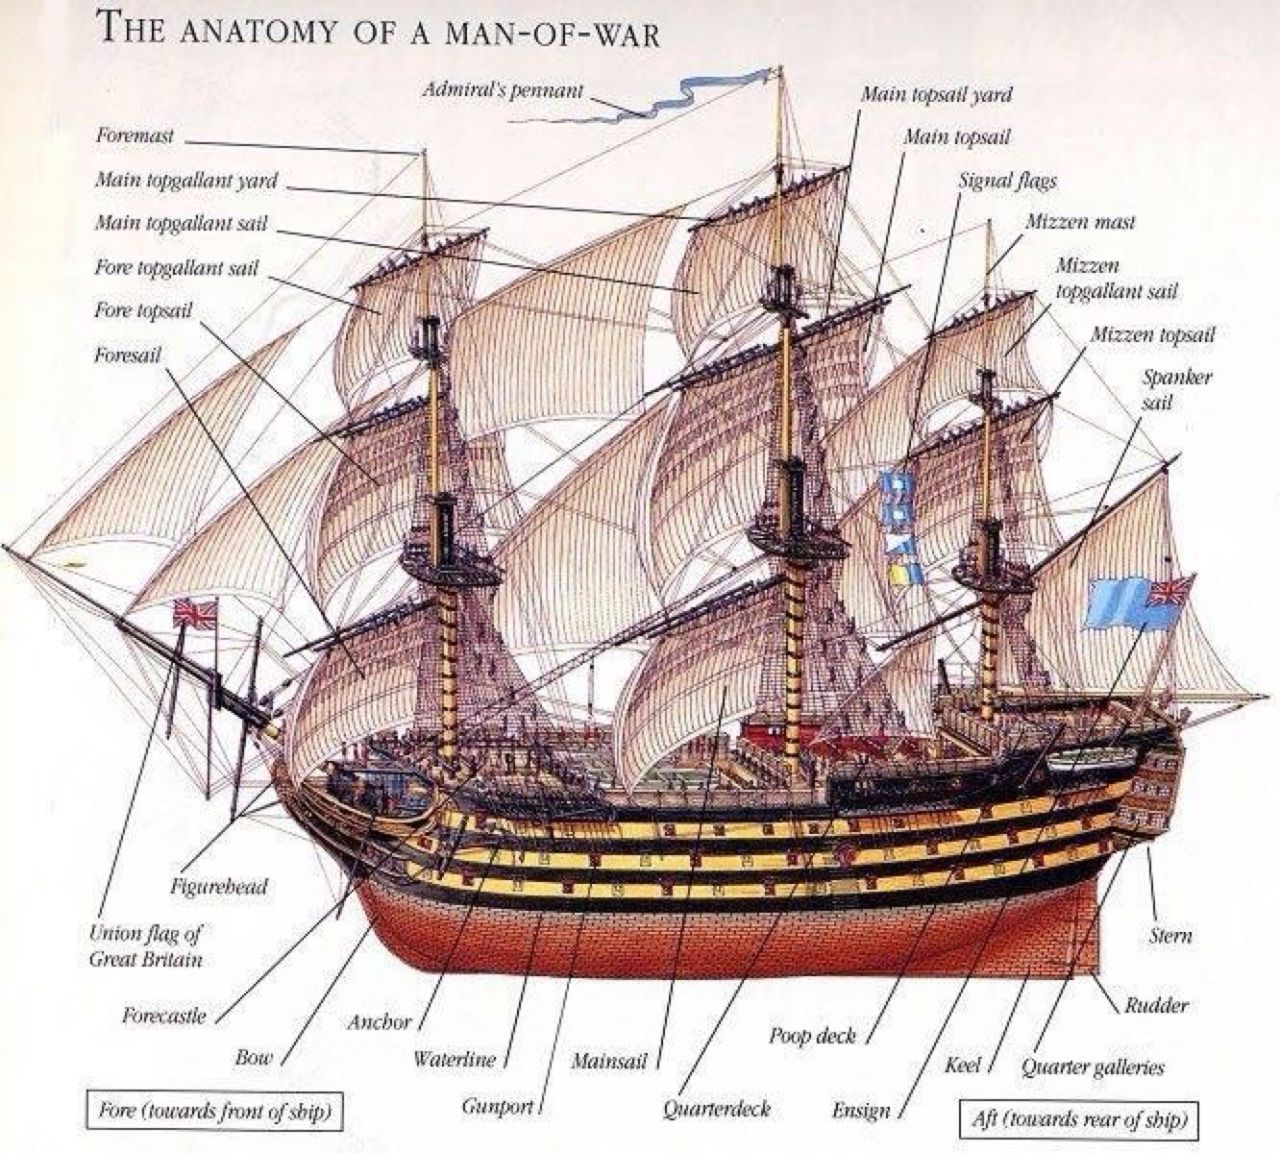 The Anatomy of a Man-of-War. | Writing | Pinterest | Anatomy and Boating